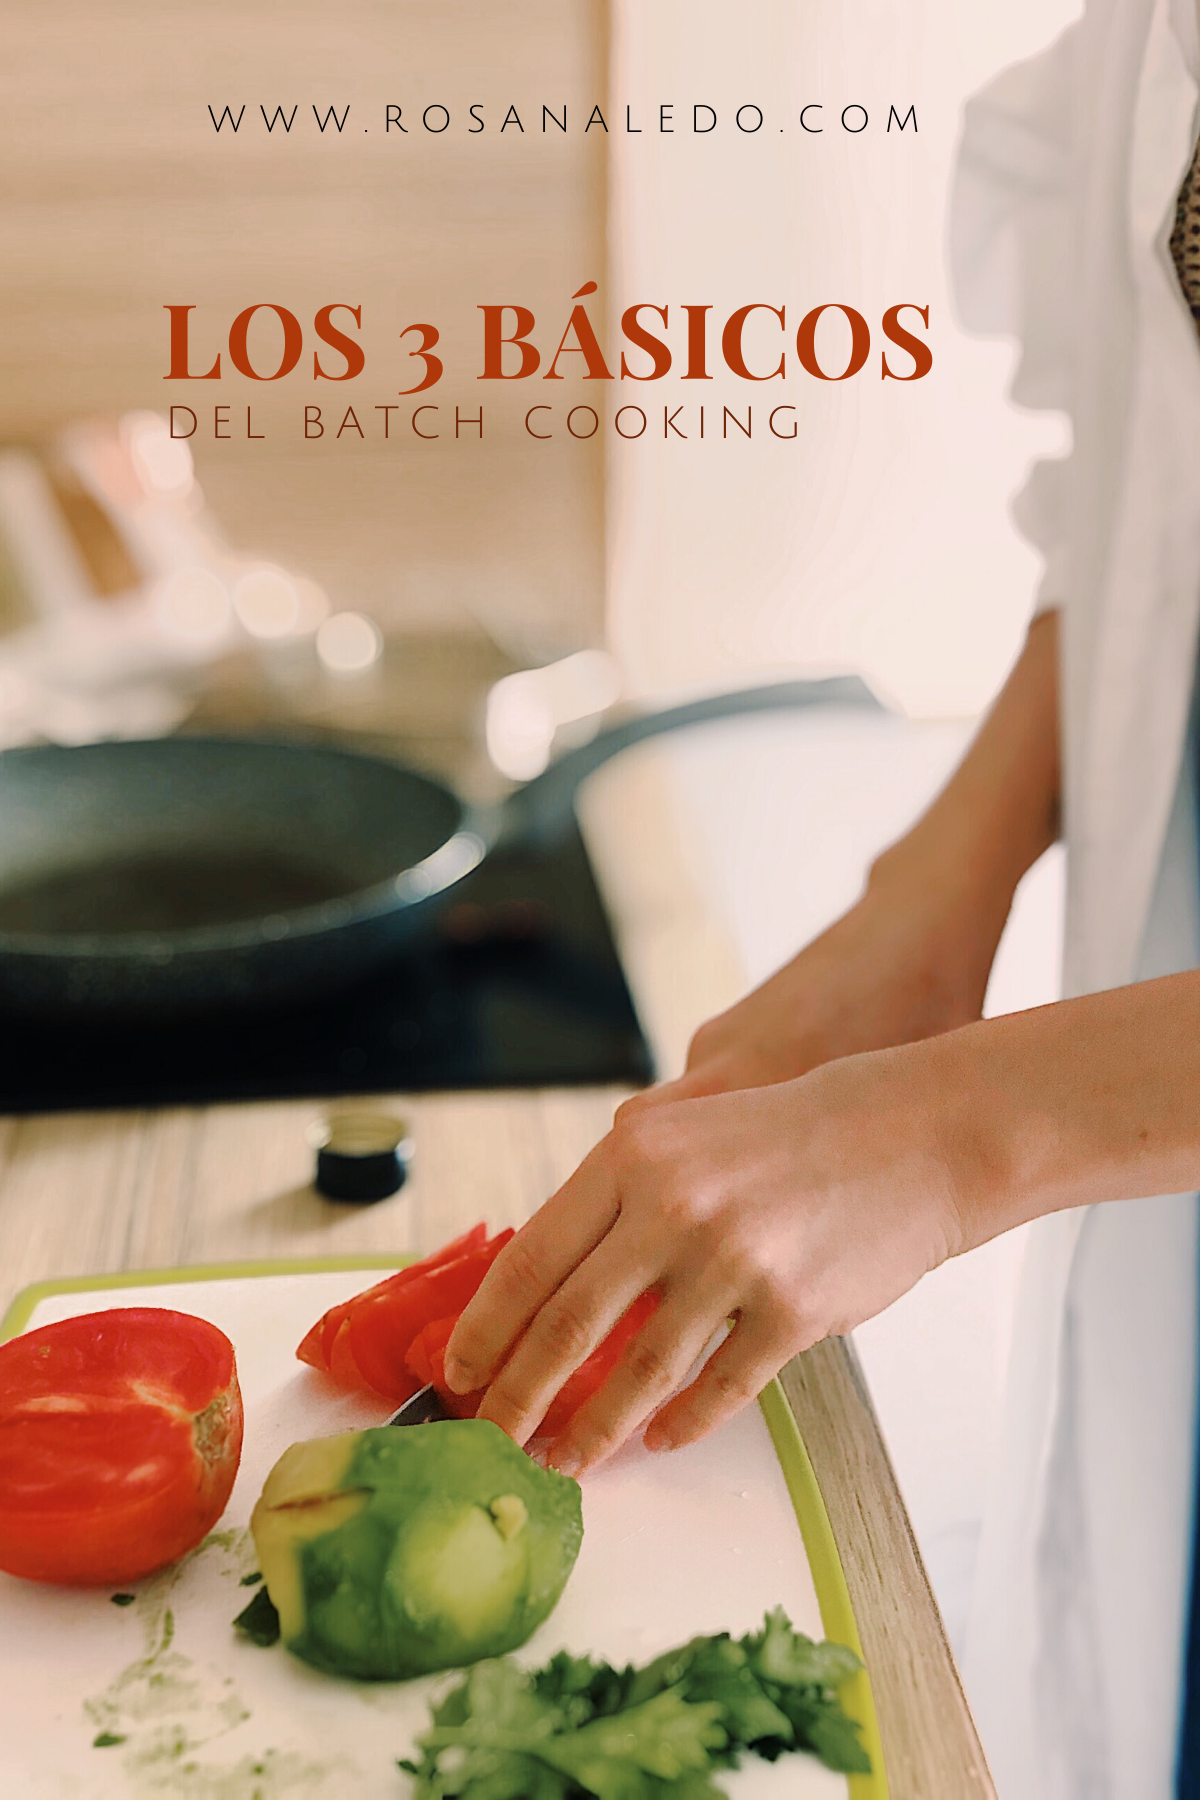 basicos de batch cooking rosana ledo